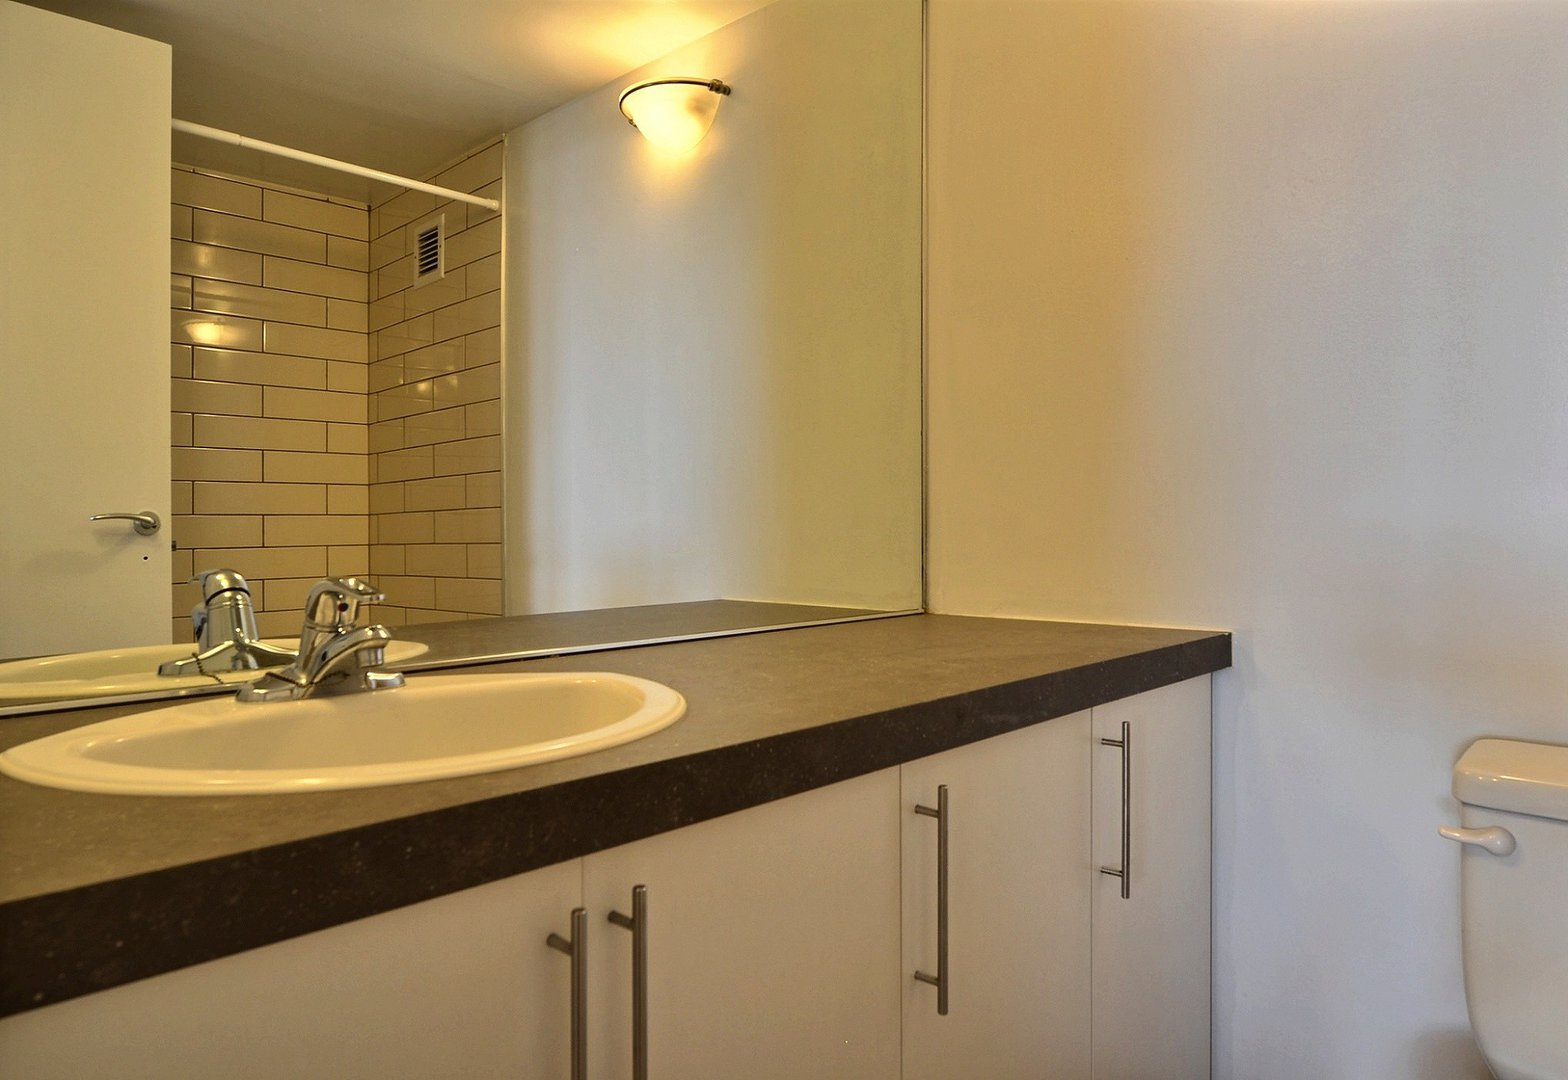 High-Rise Apartment for rent at 350 Chemin Sainte-Foy, bureau 1803, Québec City, QC. This is the bathroom.